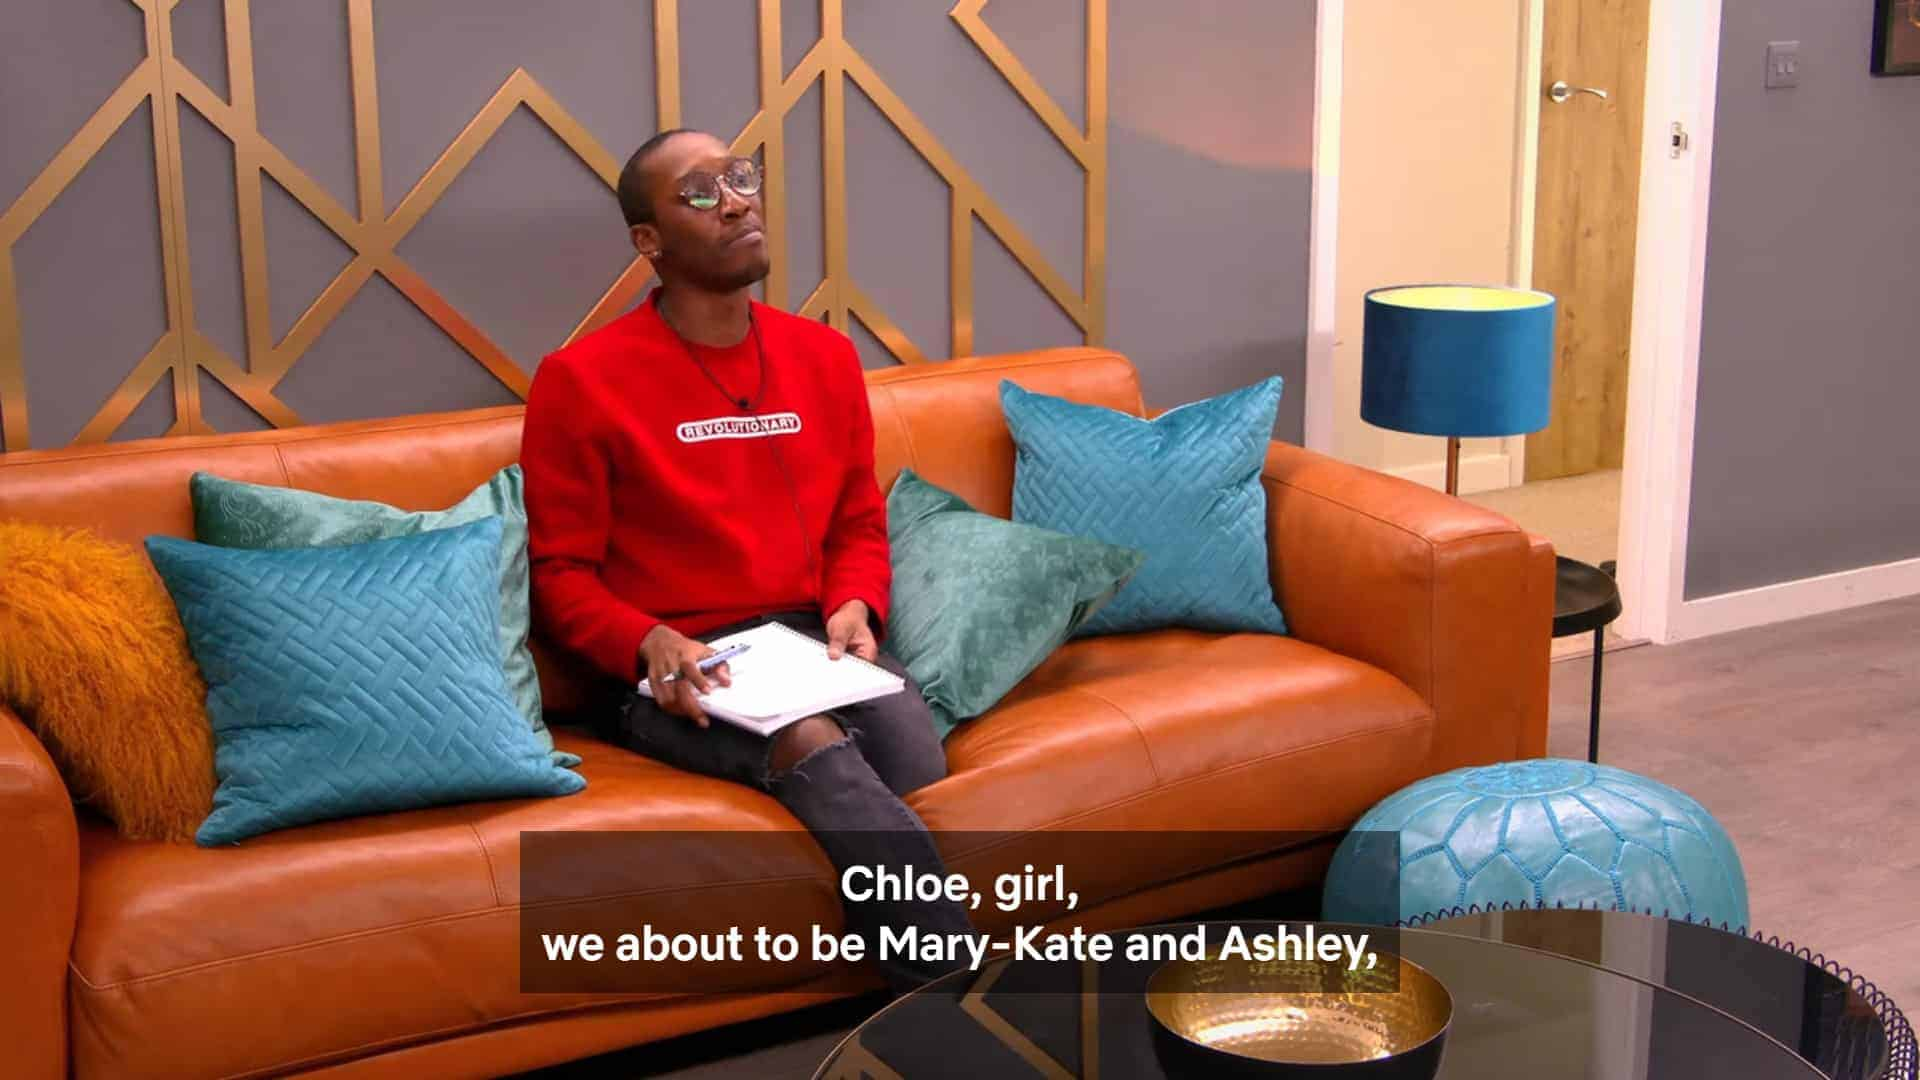 Courtney making a Mary Kate & Ashley reference